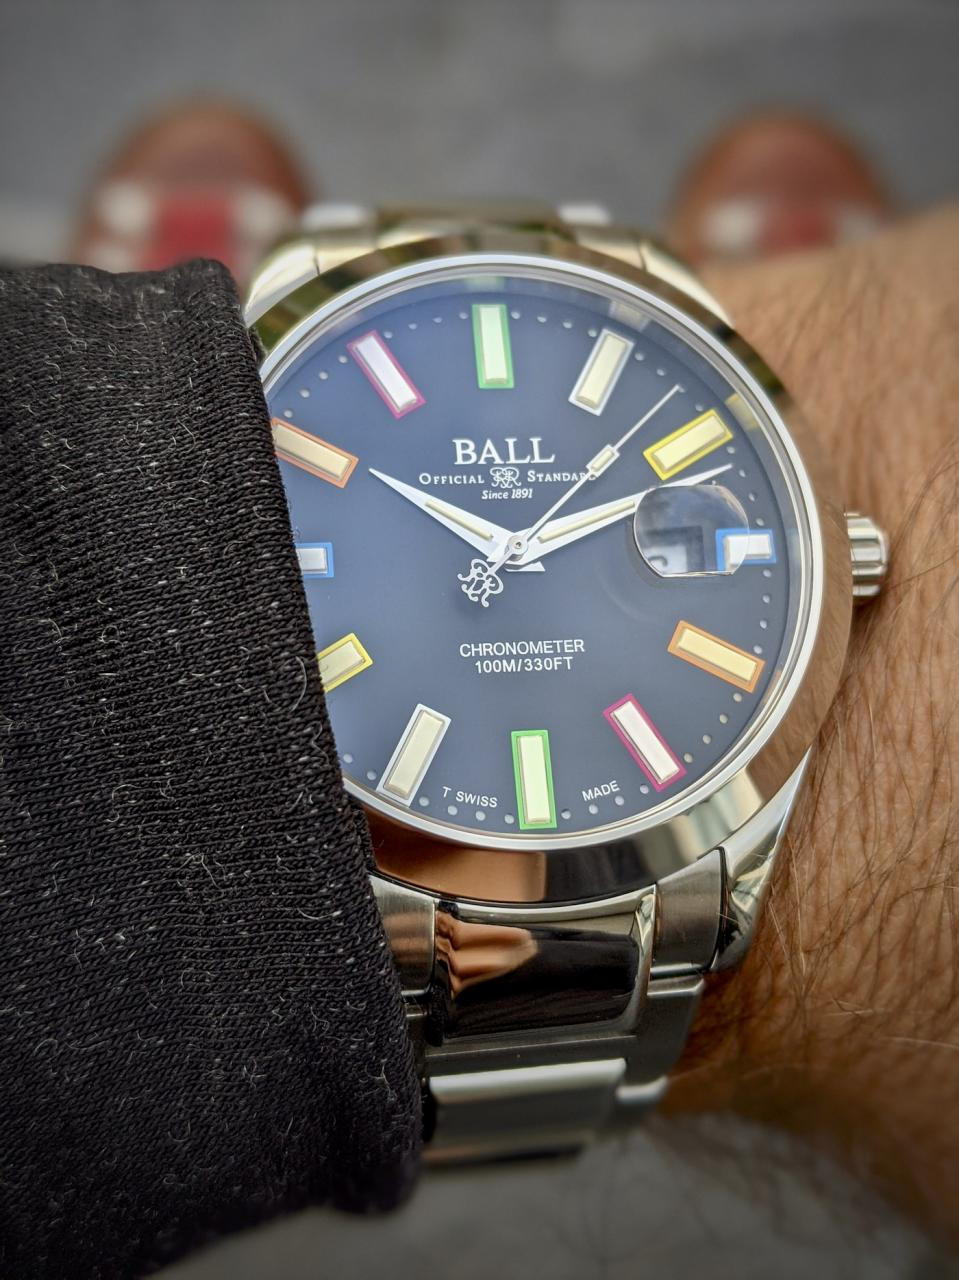 BALL Fake Watch Engineer III Marvelight Caring Edition Wrist Time Reviews